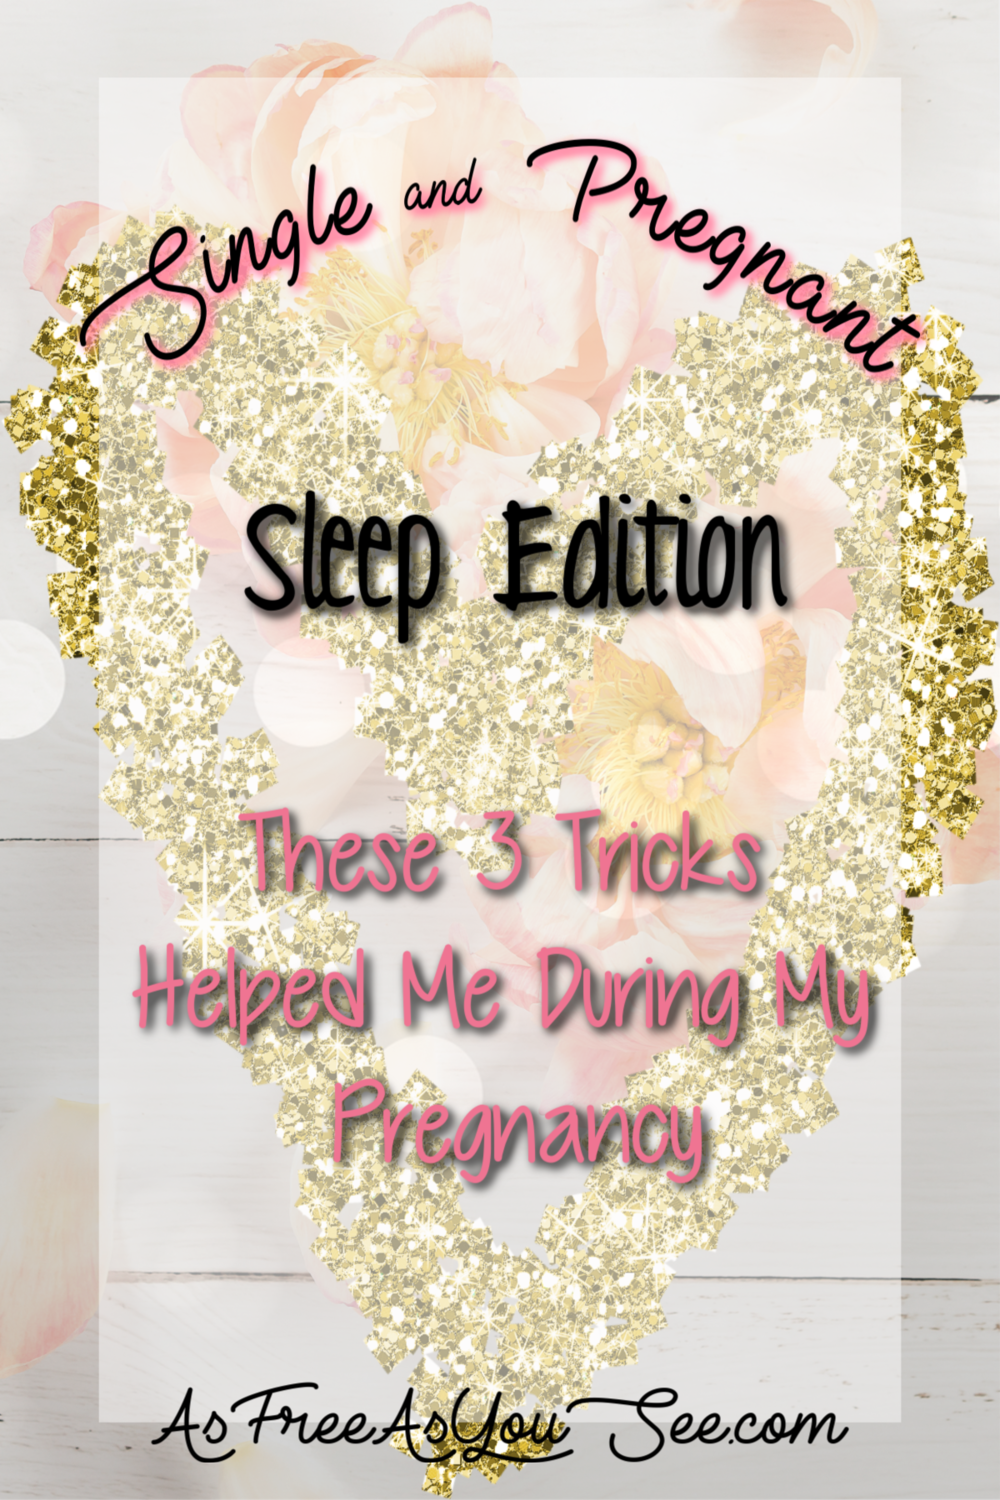 Single and Pregnant: Sleep Edition- These 3 Tricks Helped Me During My Pregnancy